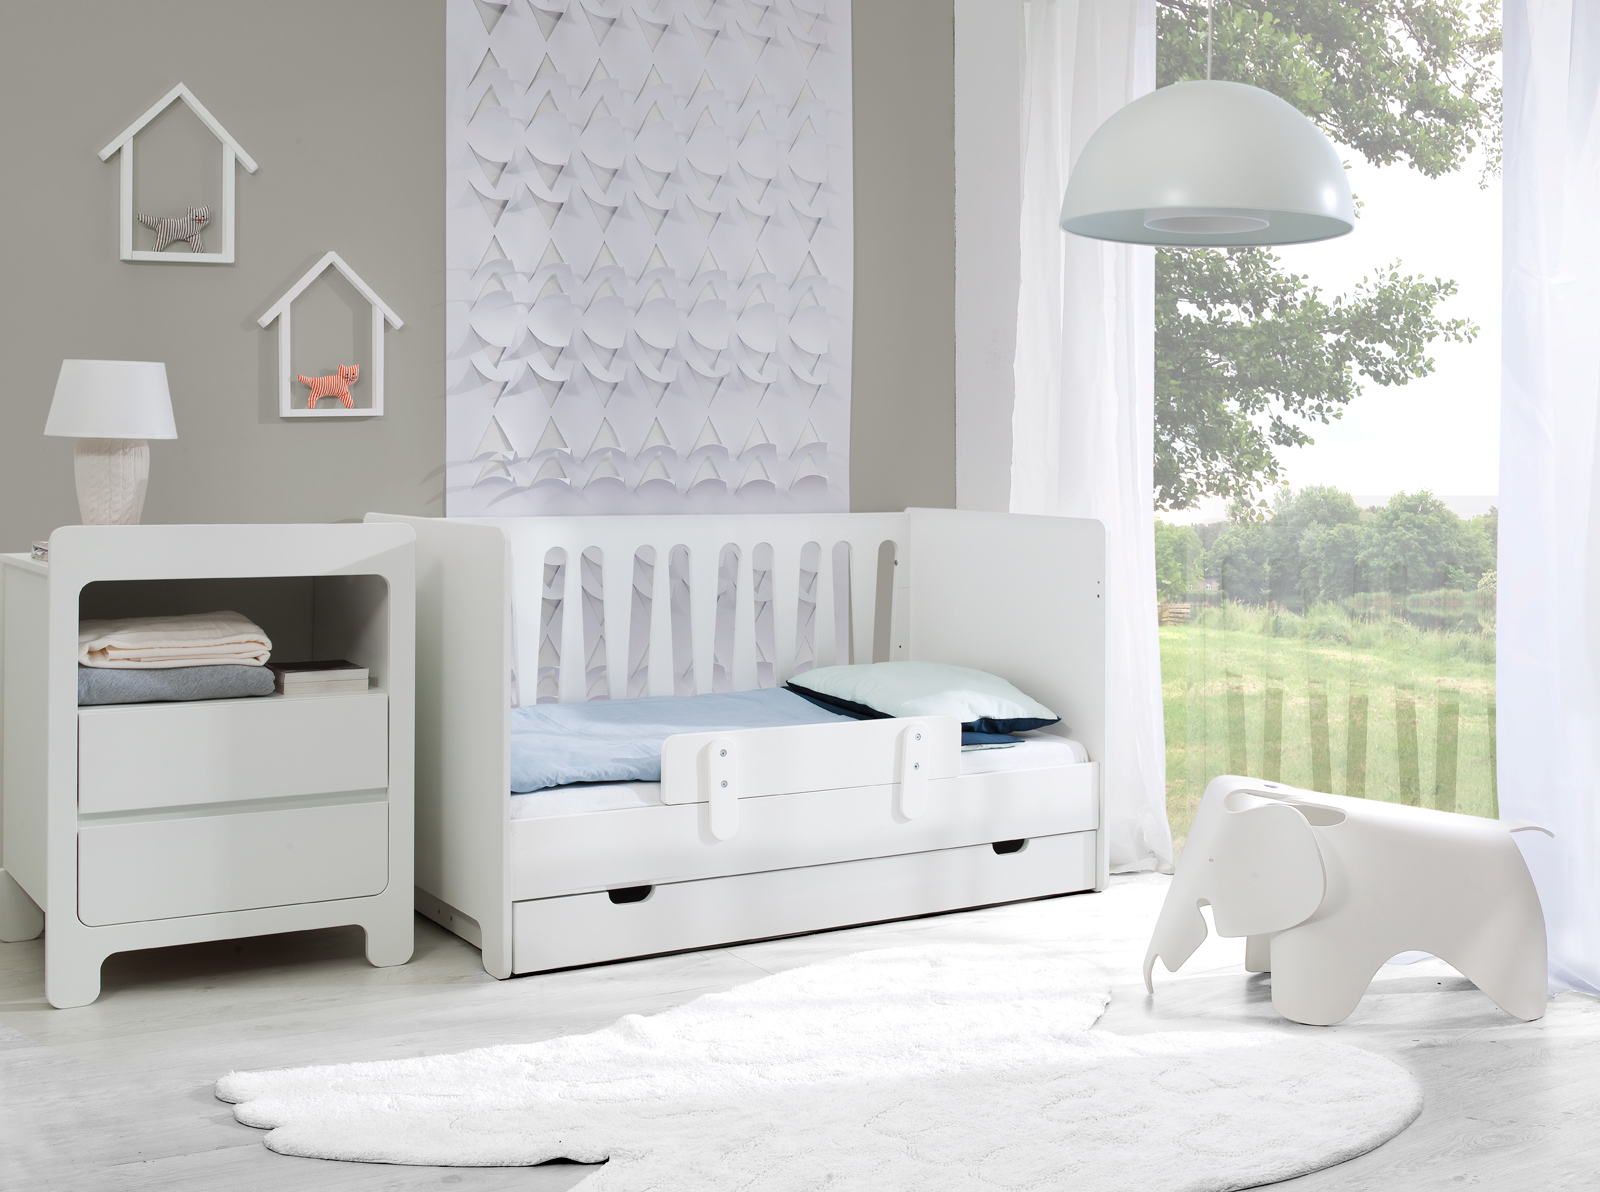 pinio moon 4 meubles lit 140x70 commode 2 tiroirs armoire 3 portes tag re murale baby. Black Bedroom Furniture Sets. Home Design Ideas